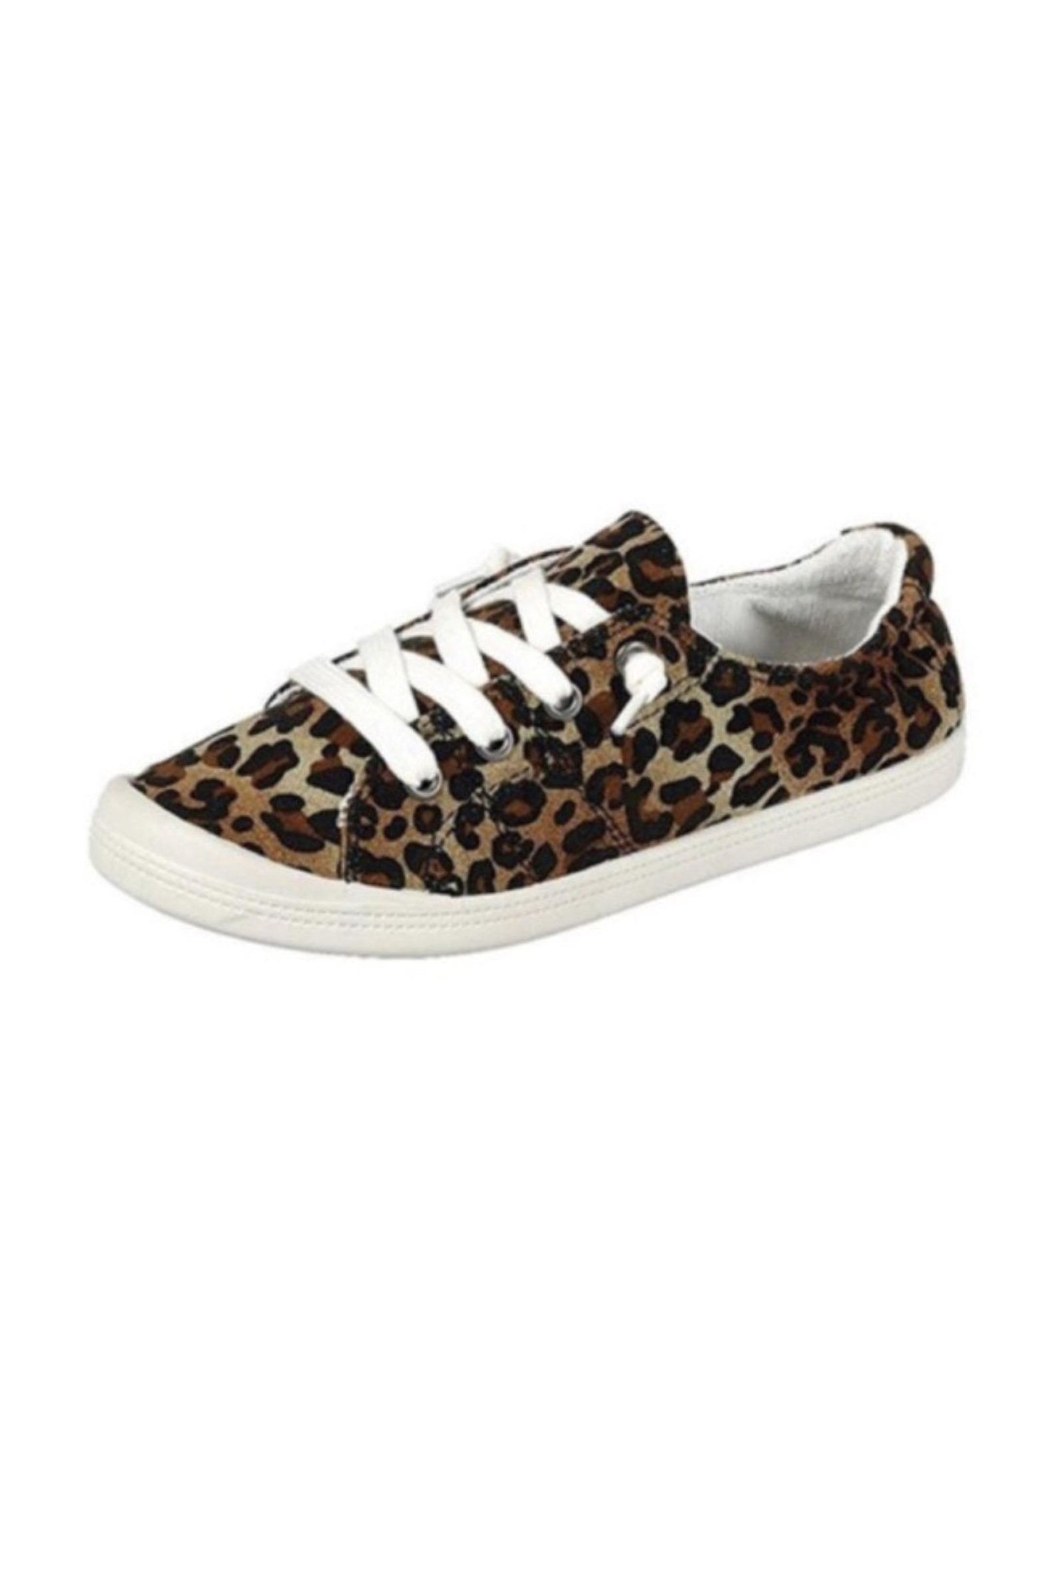 L.A. Shoe King Comfy Canvas Sneaker - Front Cropped Image